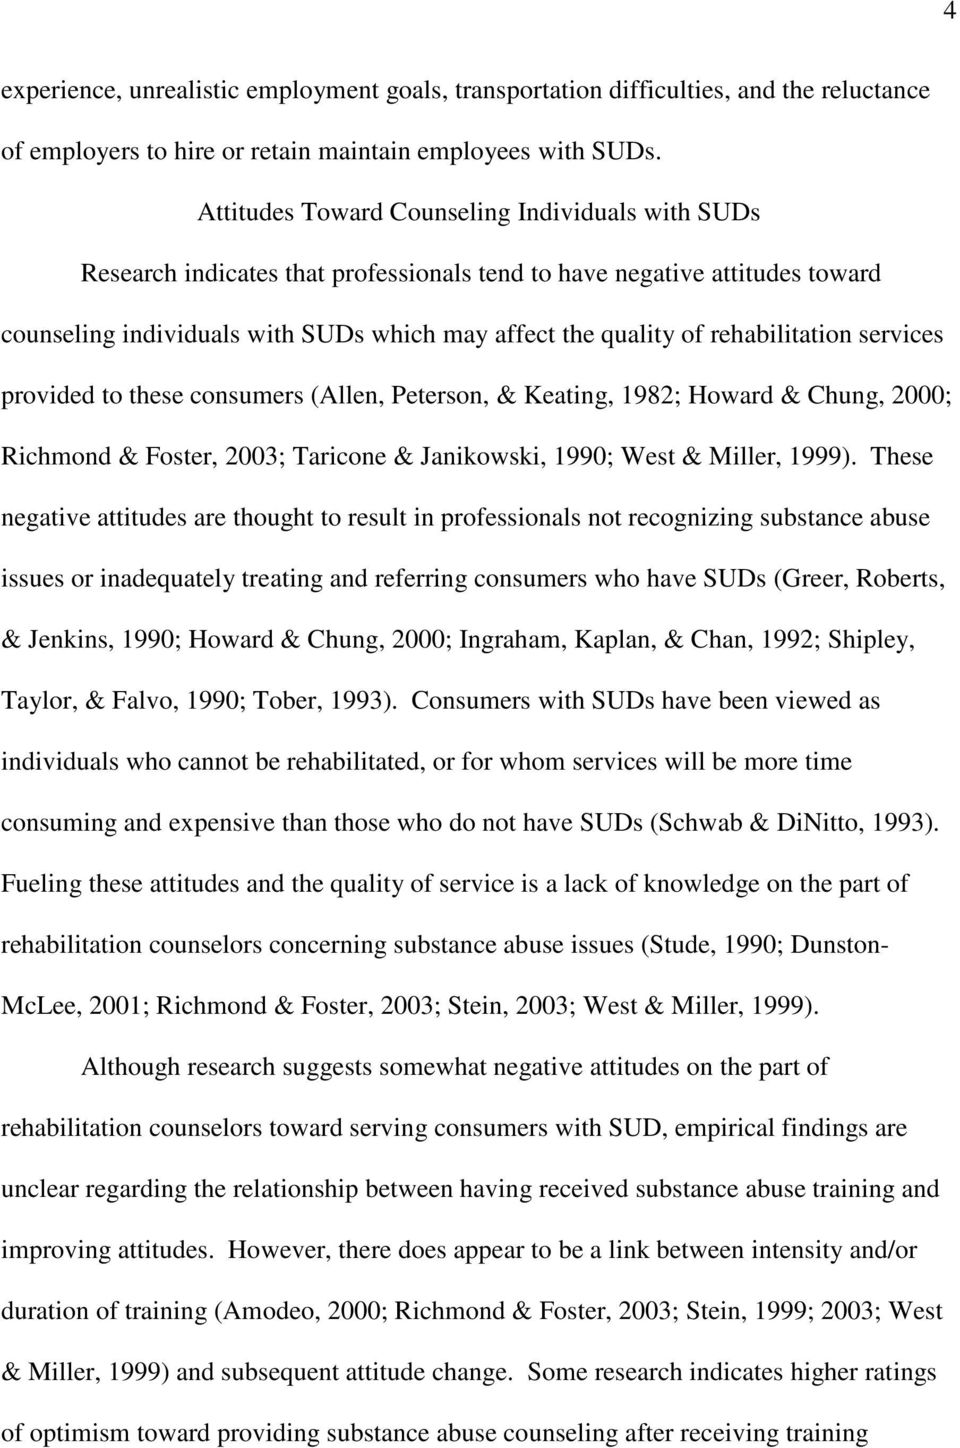 rehabilitation services provided to these consumers (Allen, Peterson, & Keating, 1982; Howard & Chung, 2000; Richmond & Foster, 2003; Taricone & Janikowski, 1990; West & Miller, 1999).